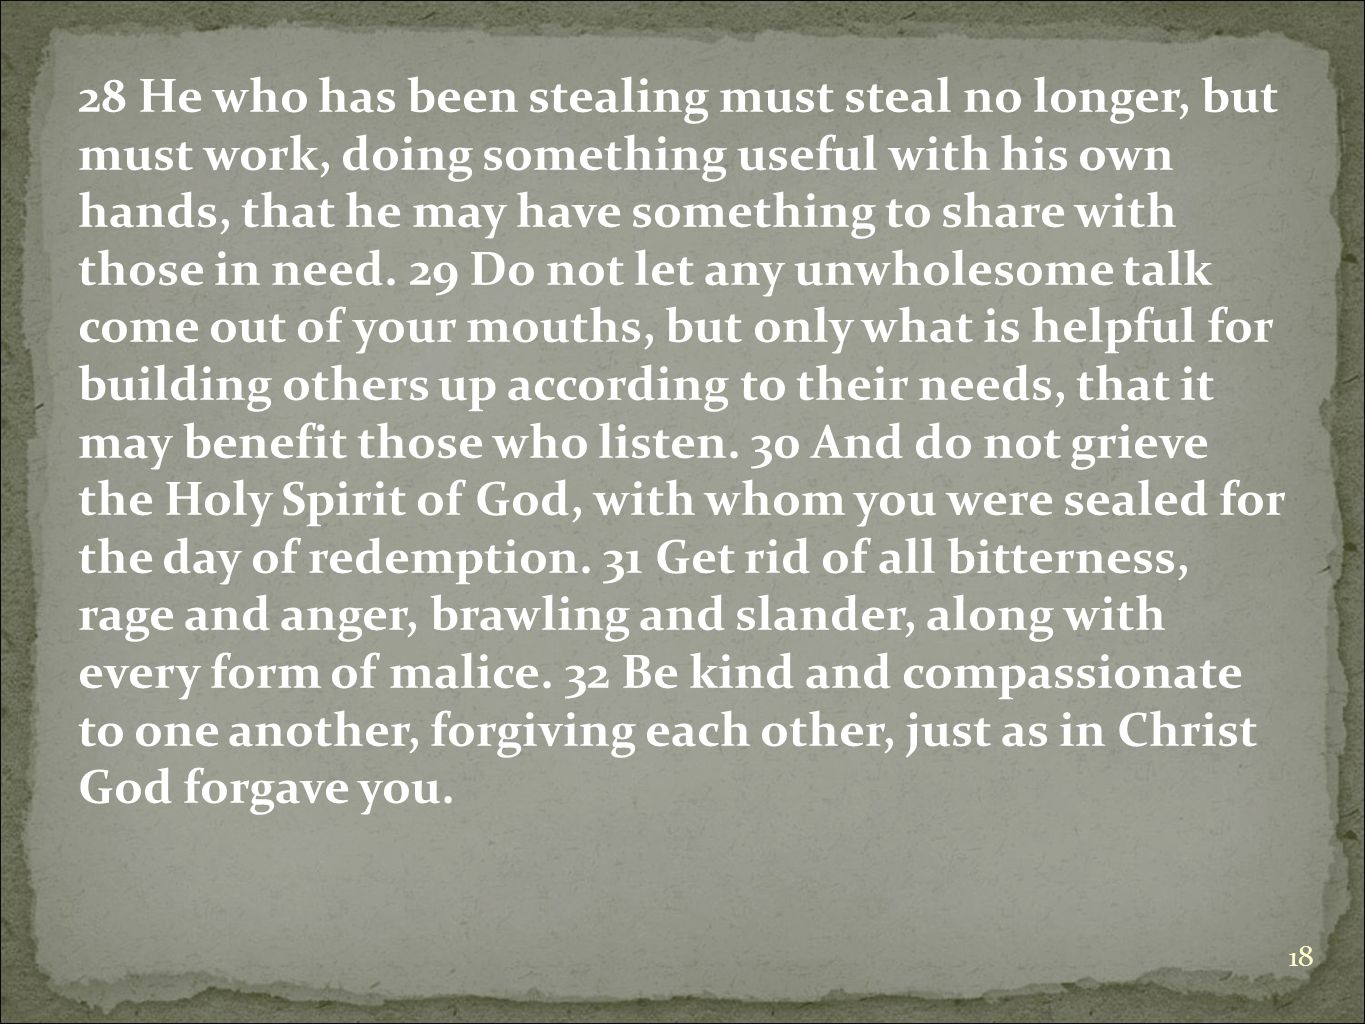 28 He who has been stealing must steal no longer, but must work, doing something useful with his own hands, that he may have something to share with those in need.